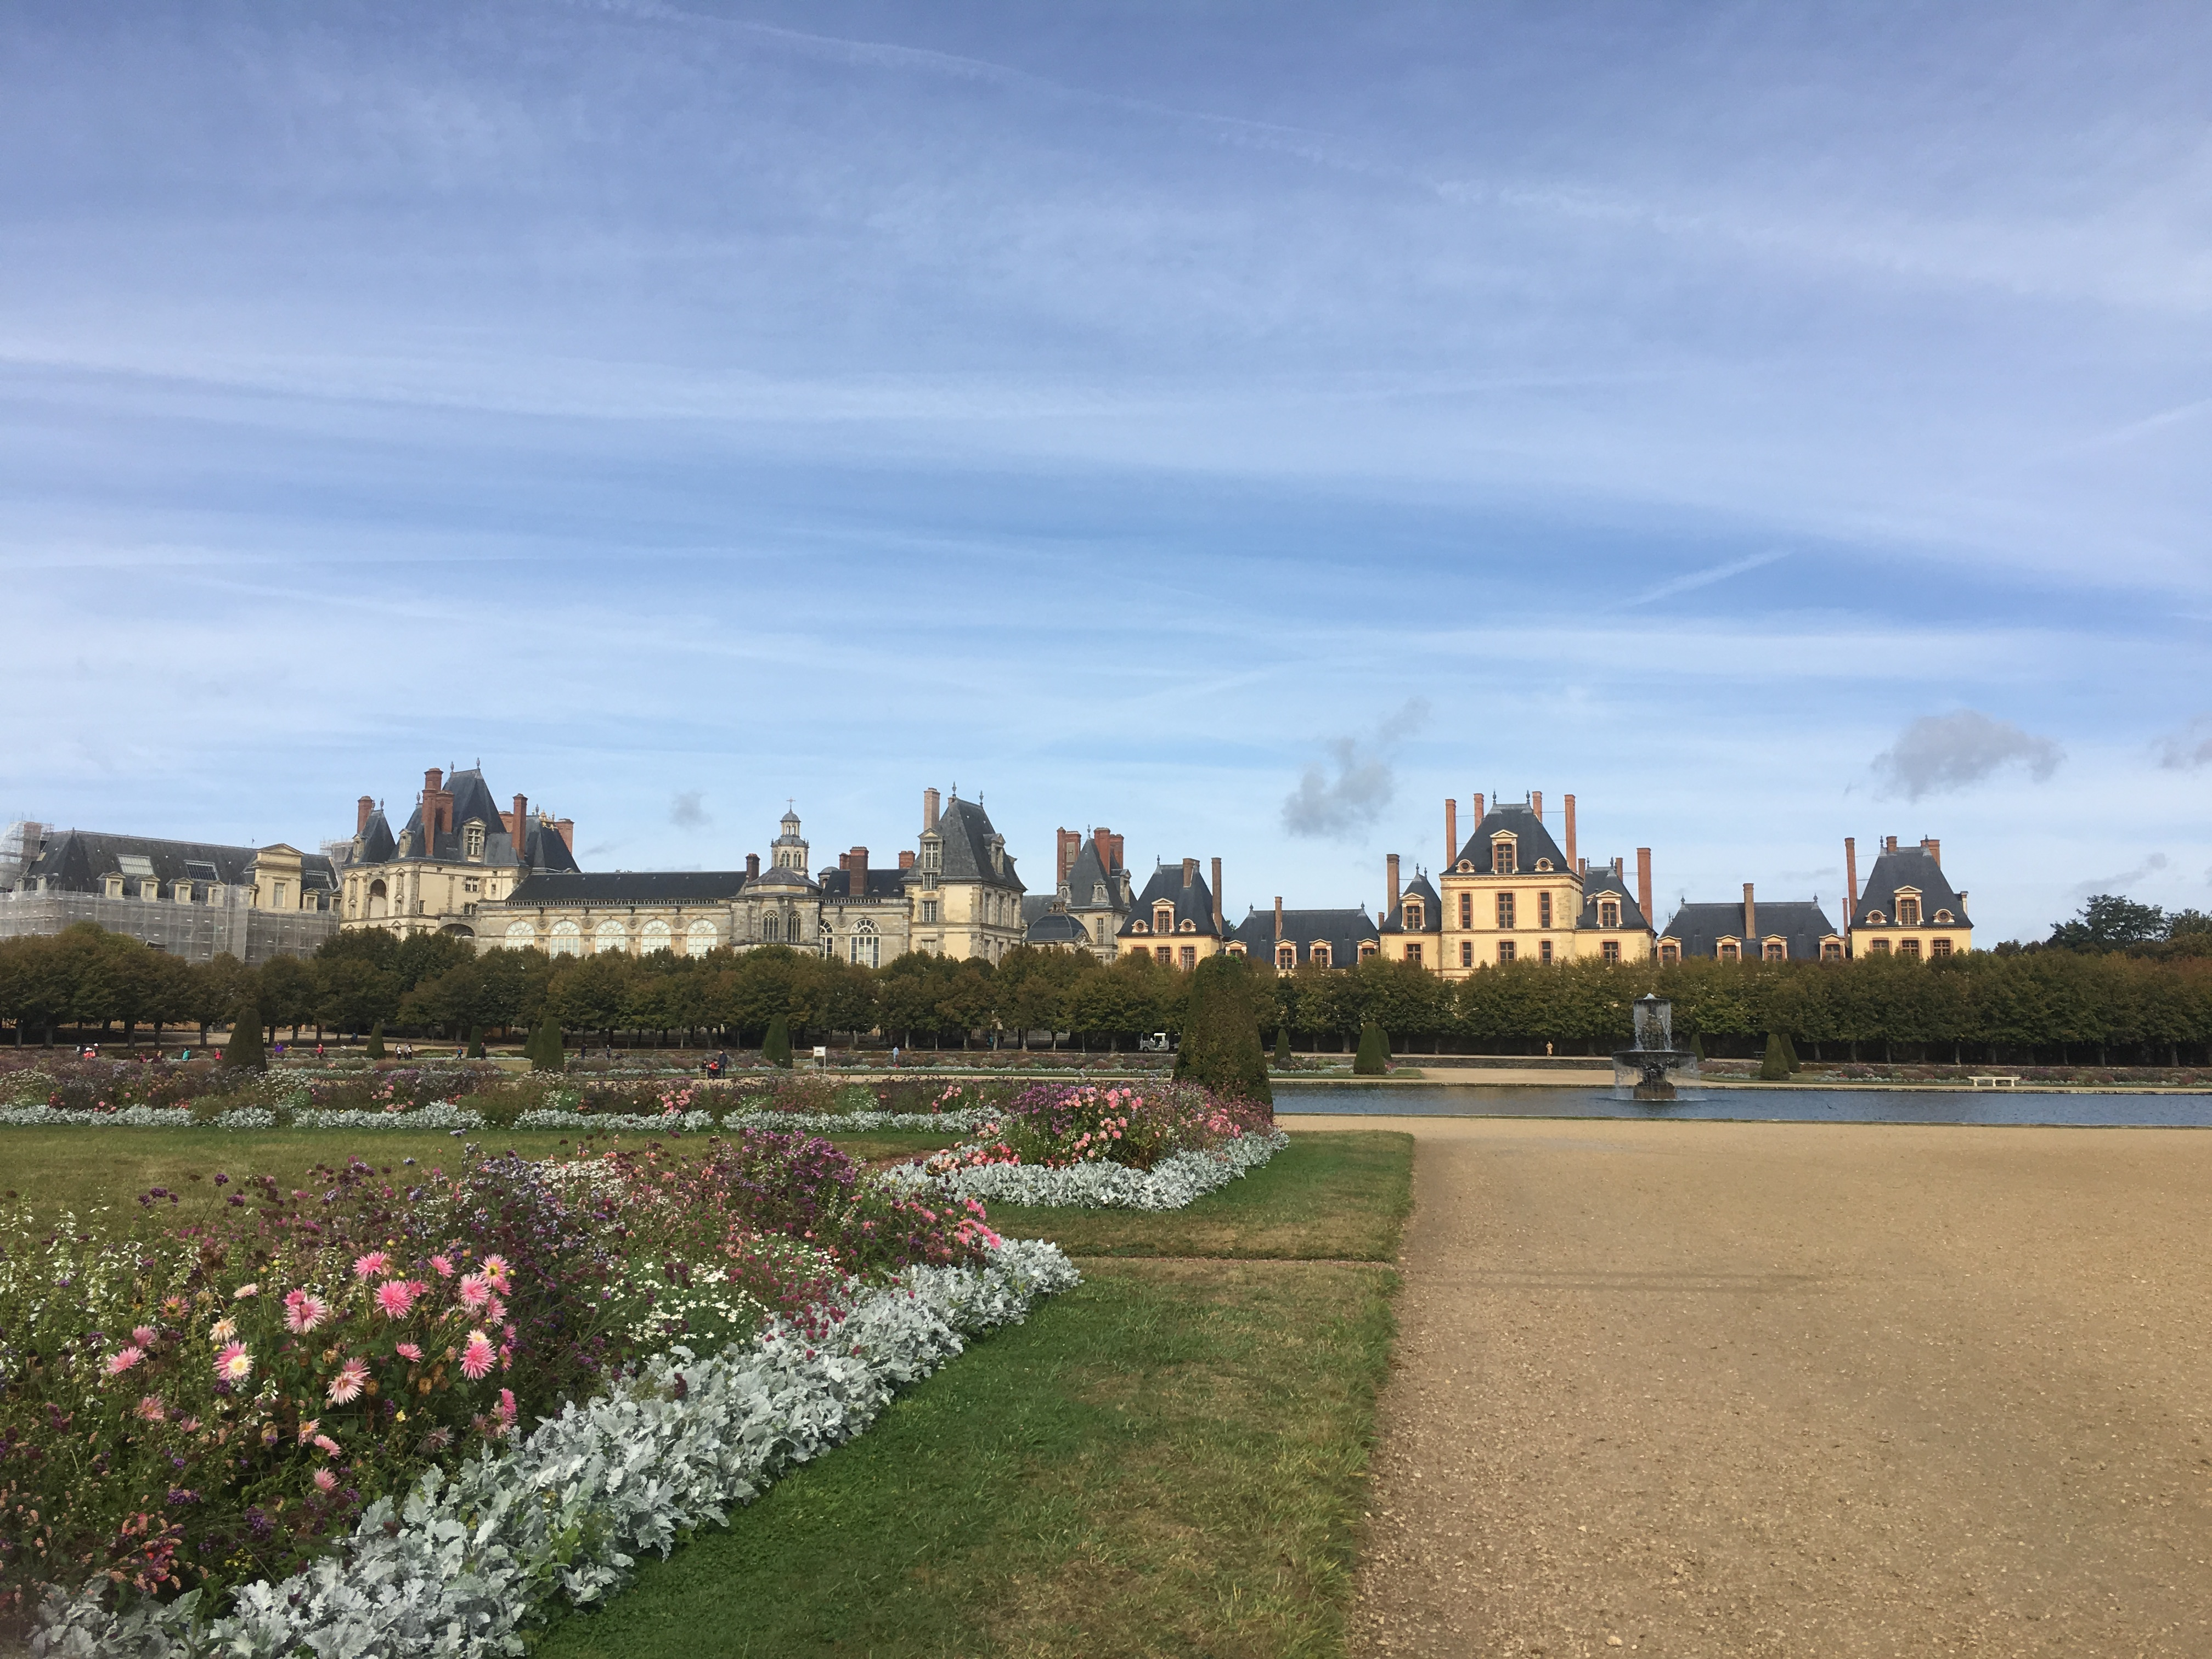 This a view of the Palace from the gardens which also shows a waterway and vegetation with flowers.